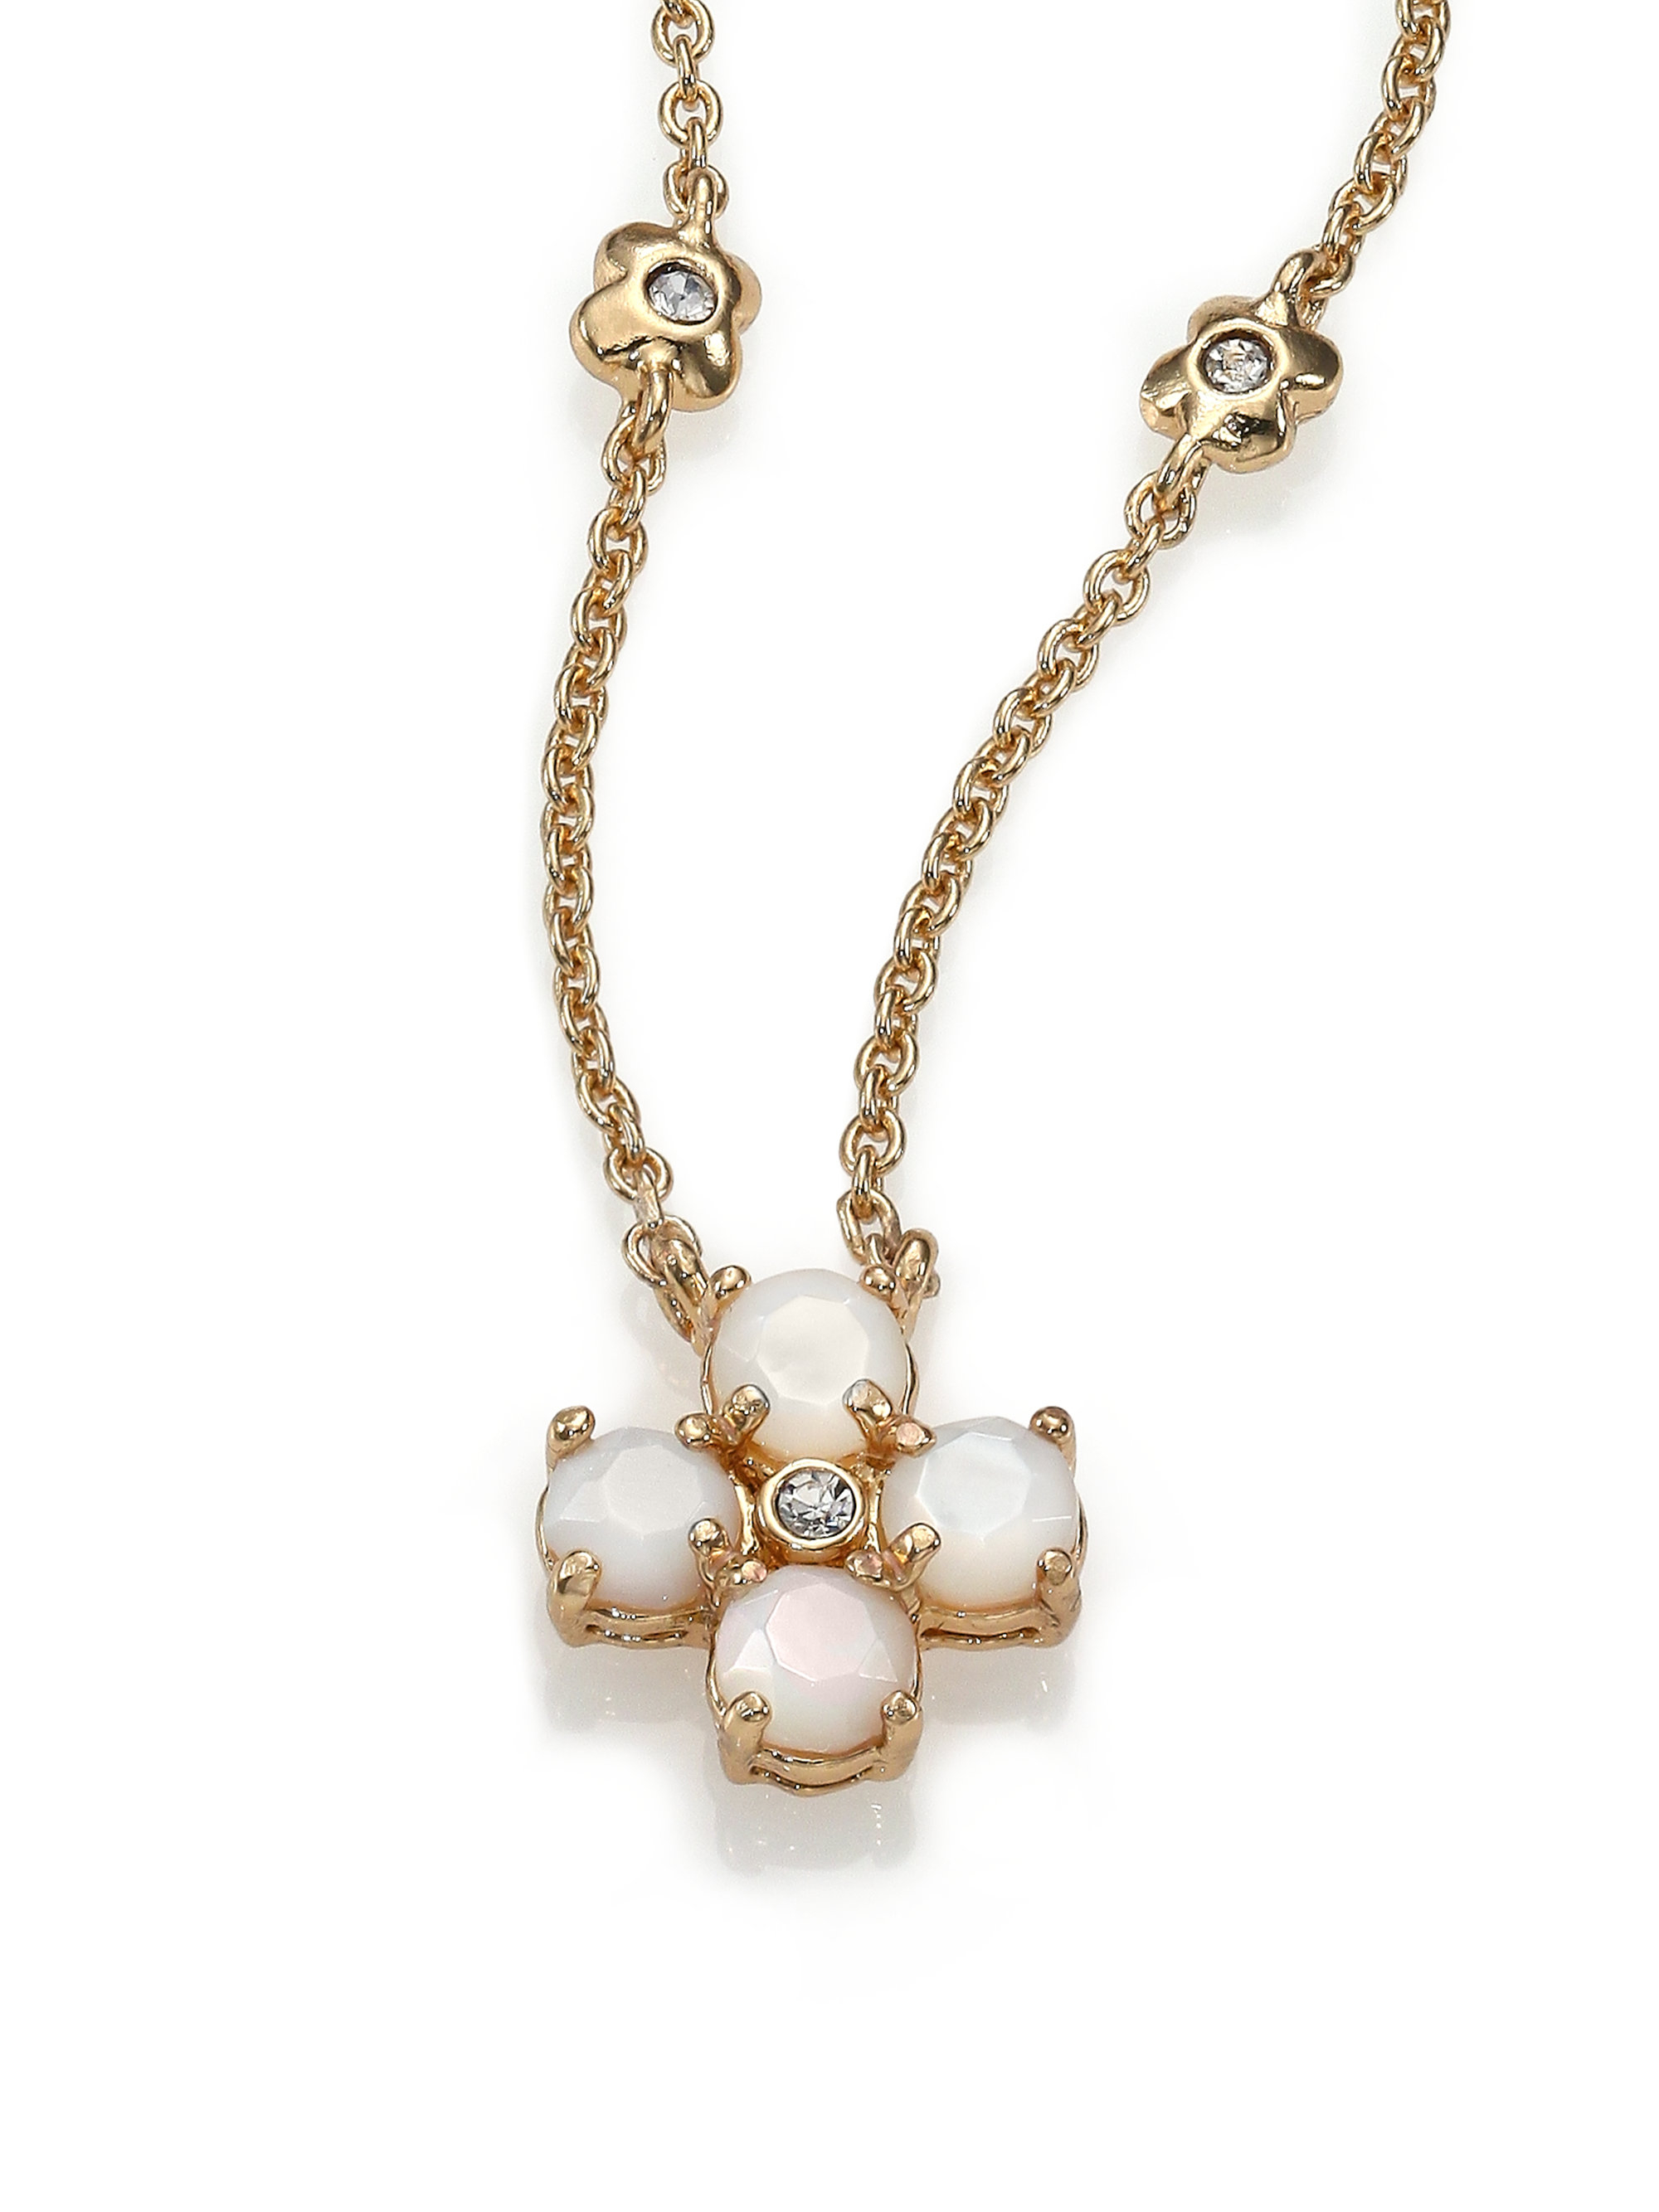 7c2cac2cc7644 kate spade new york Metallic Central Park Pansy Mother-of-pearl Mini  Pendant Necklace